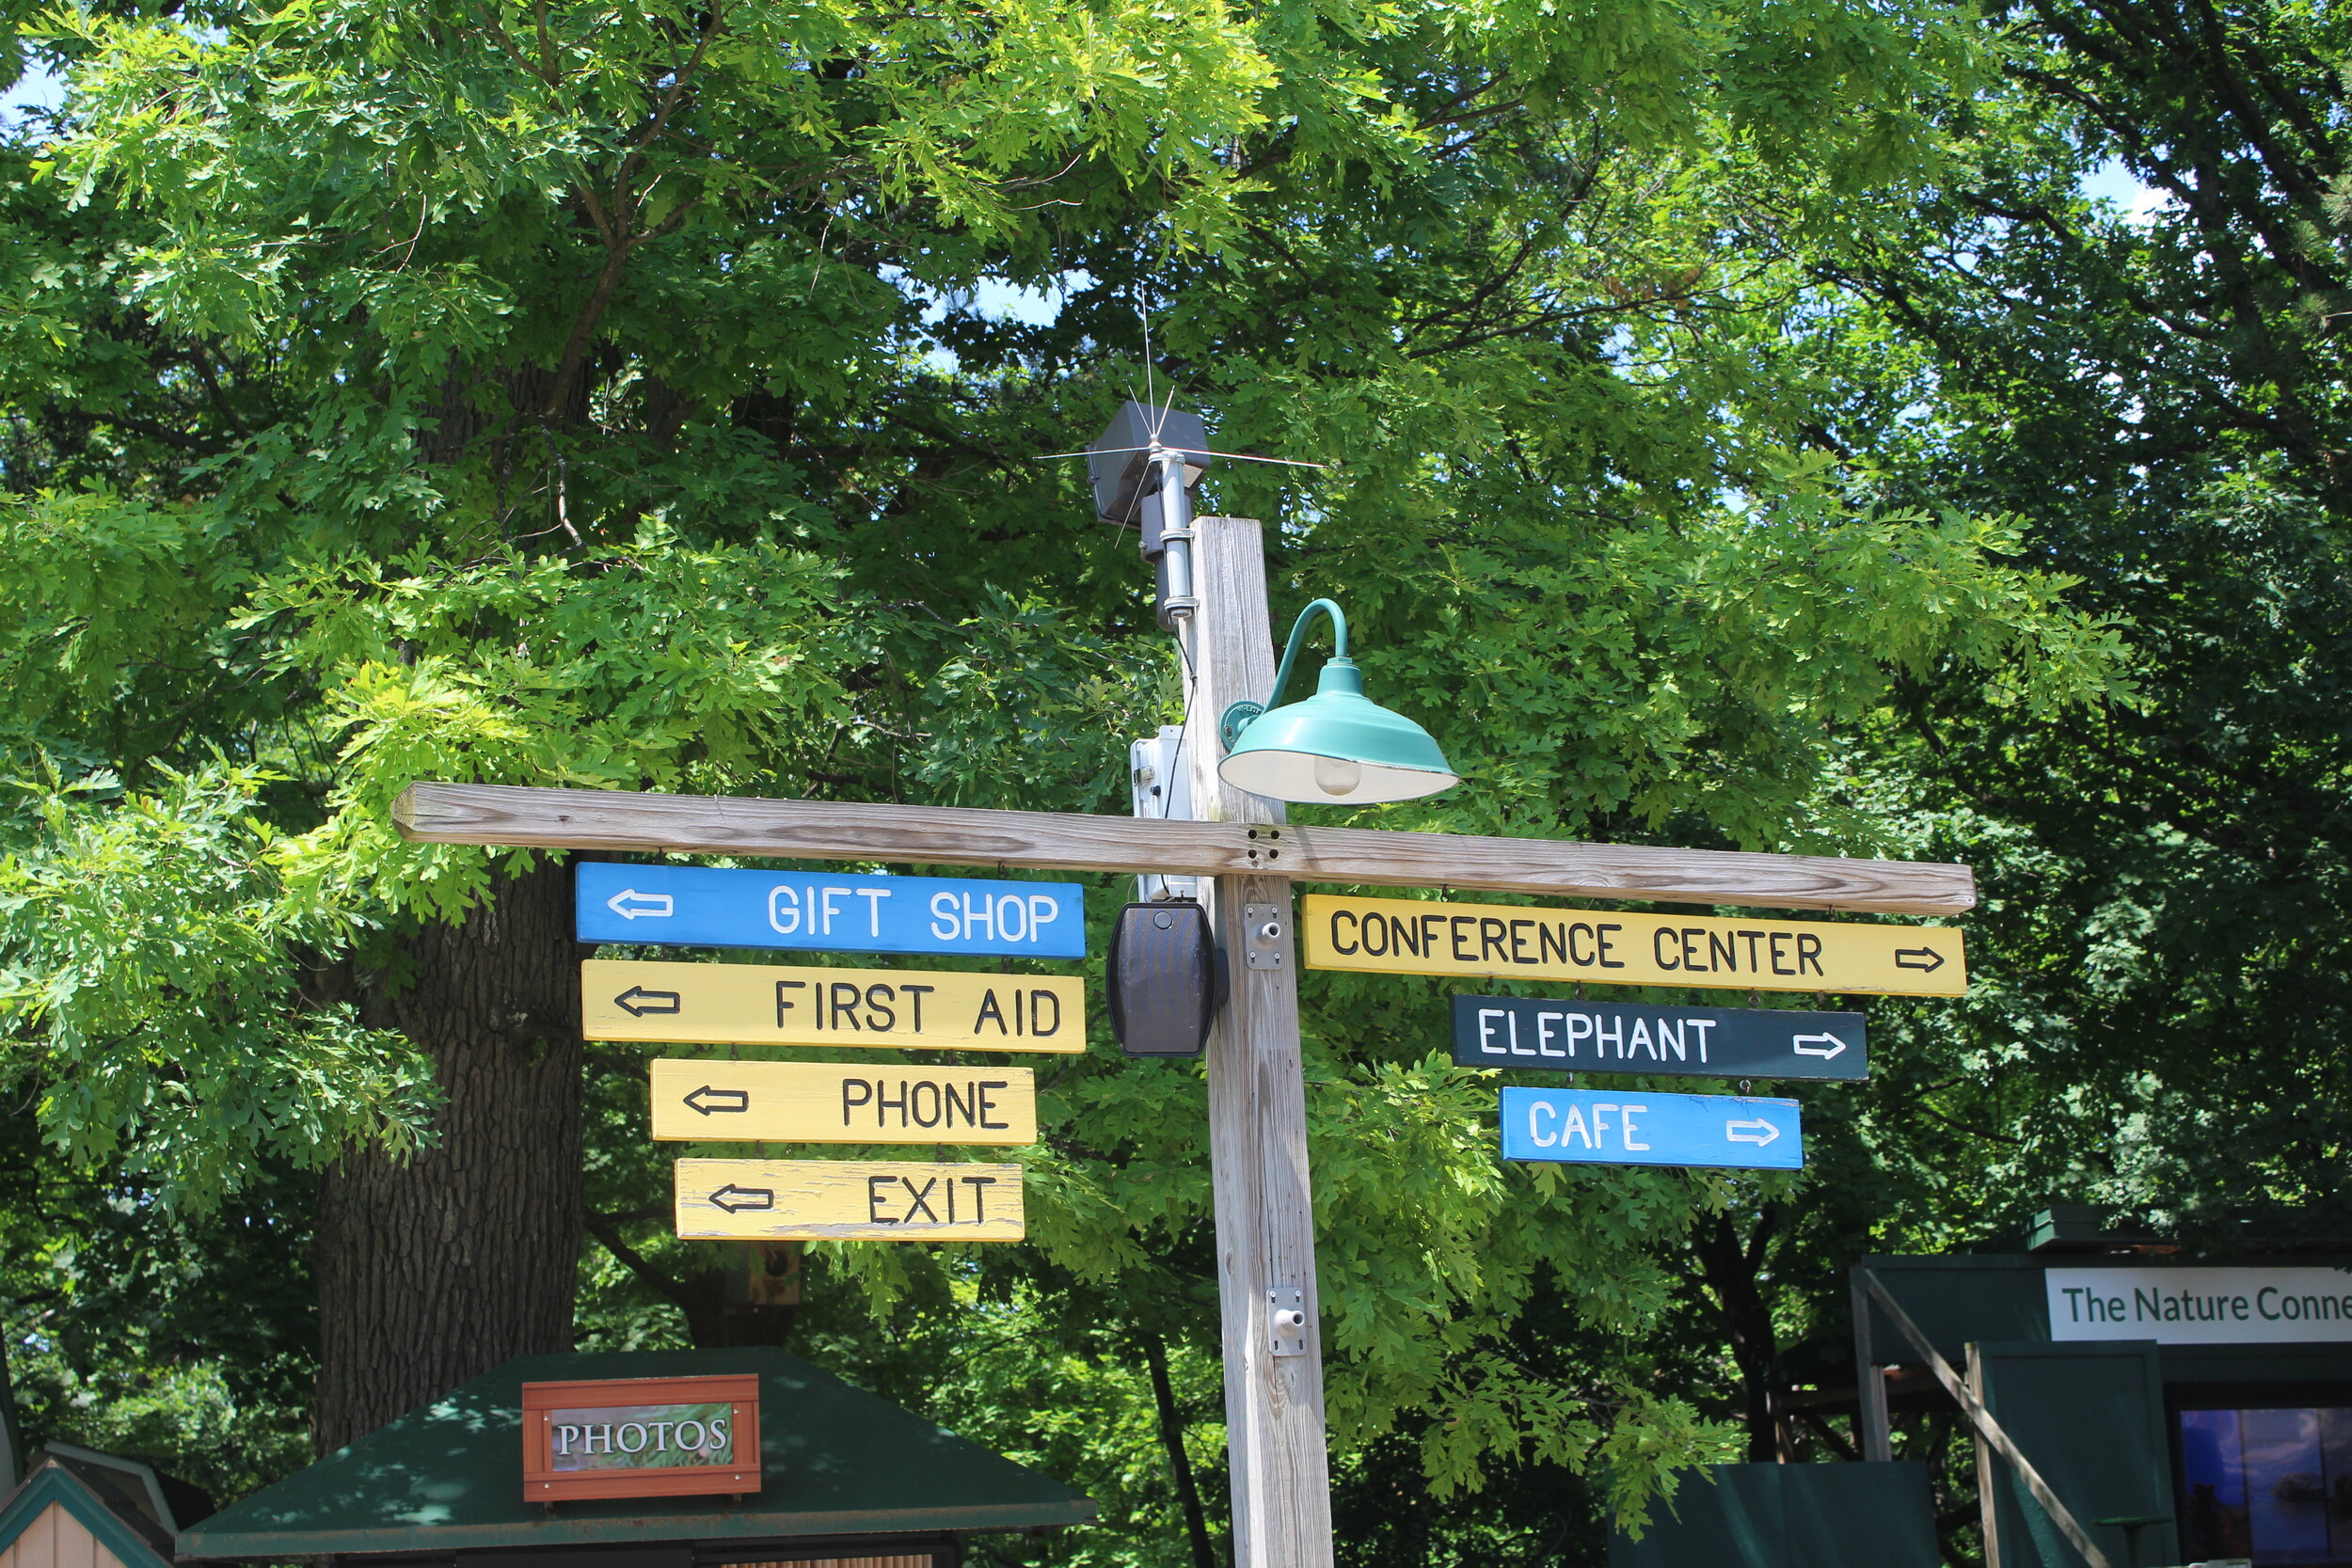 Parks-style wayfinding throughout